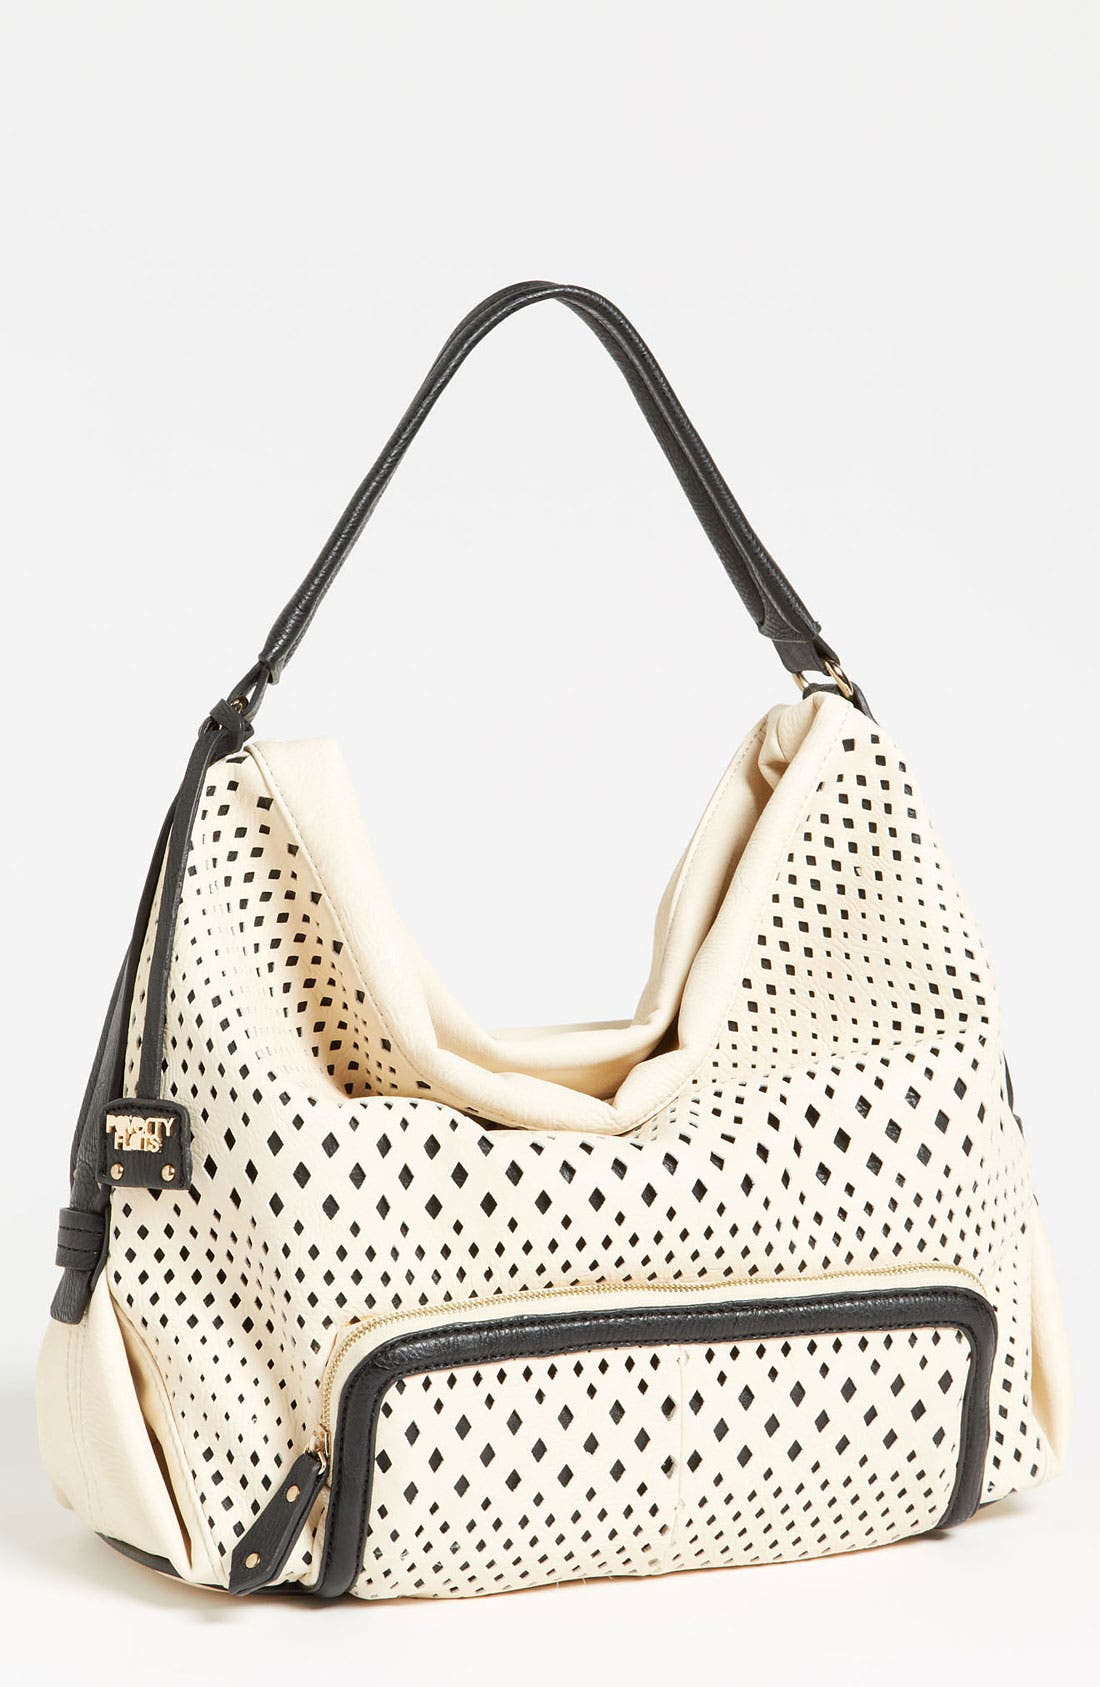 POVERTY FLATS BY RIAN, Perforated Faux Leather Shoulder Bag, Main thumbnail 1, color, 001